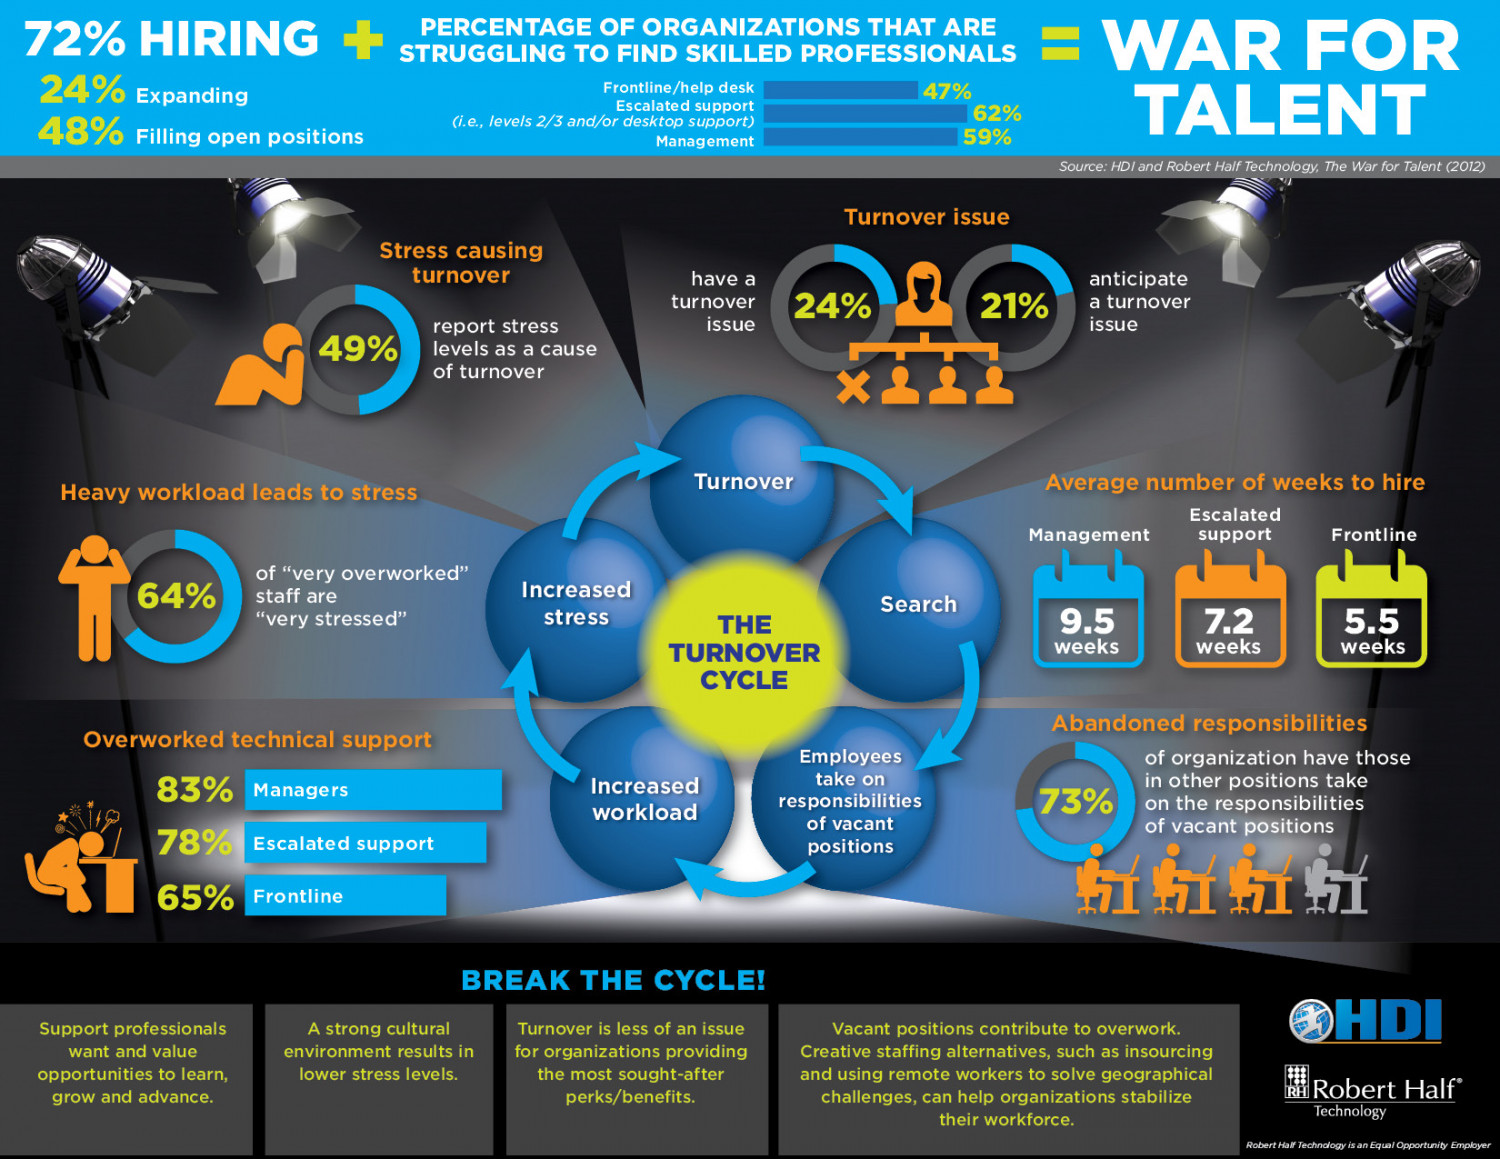 War for Talent: HDI/Robert Half Infographic